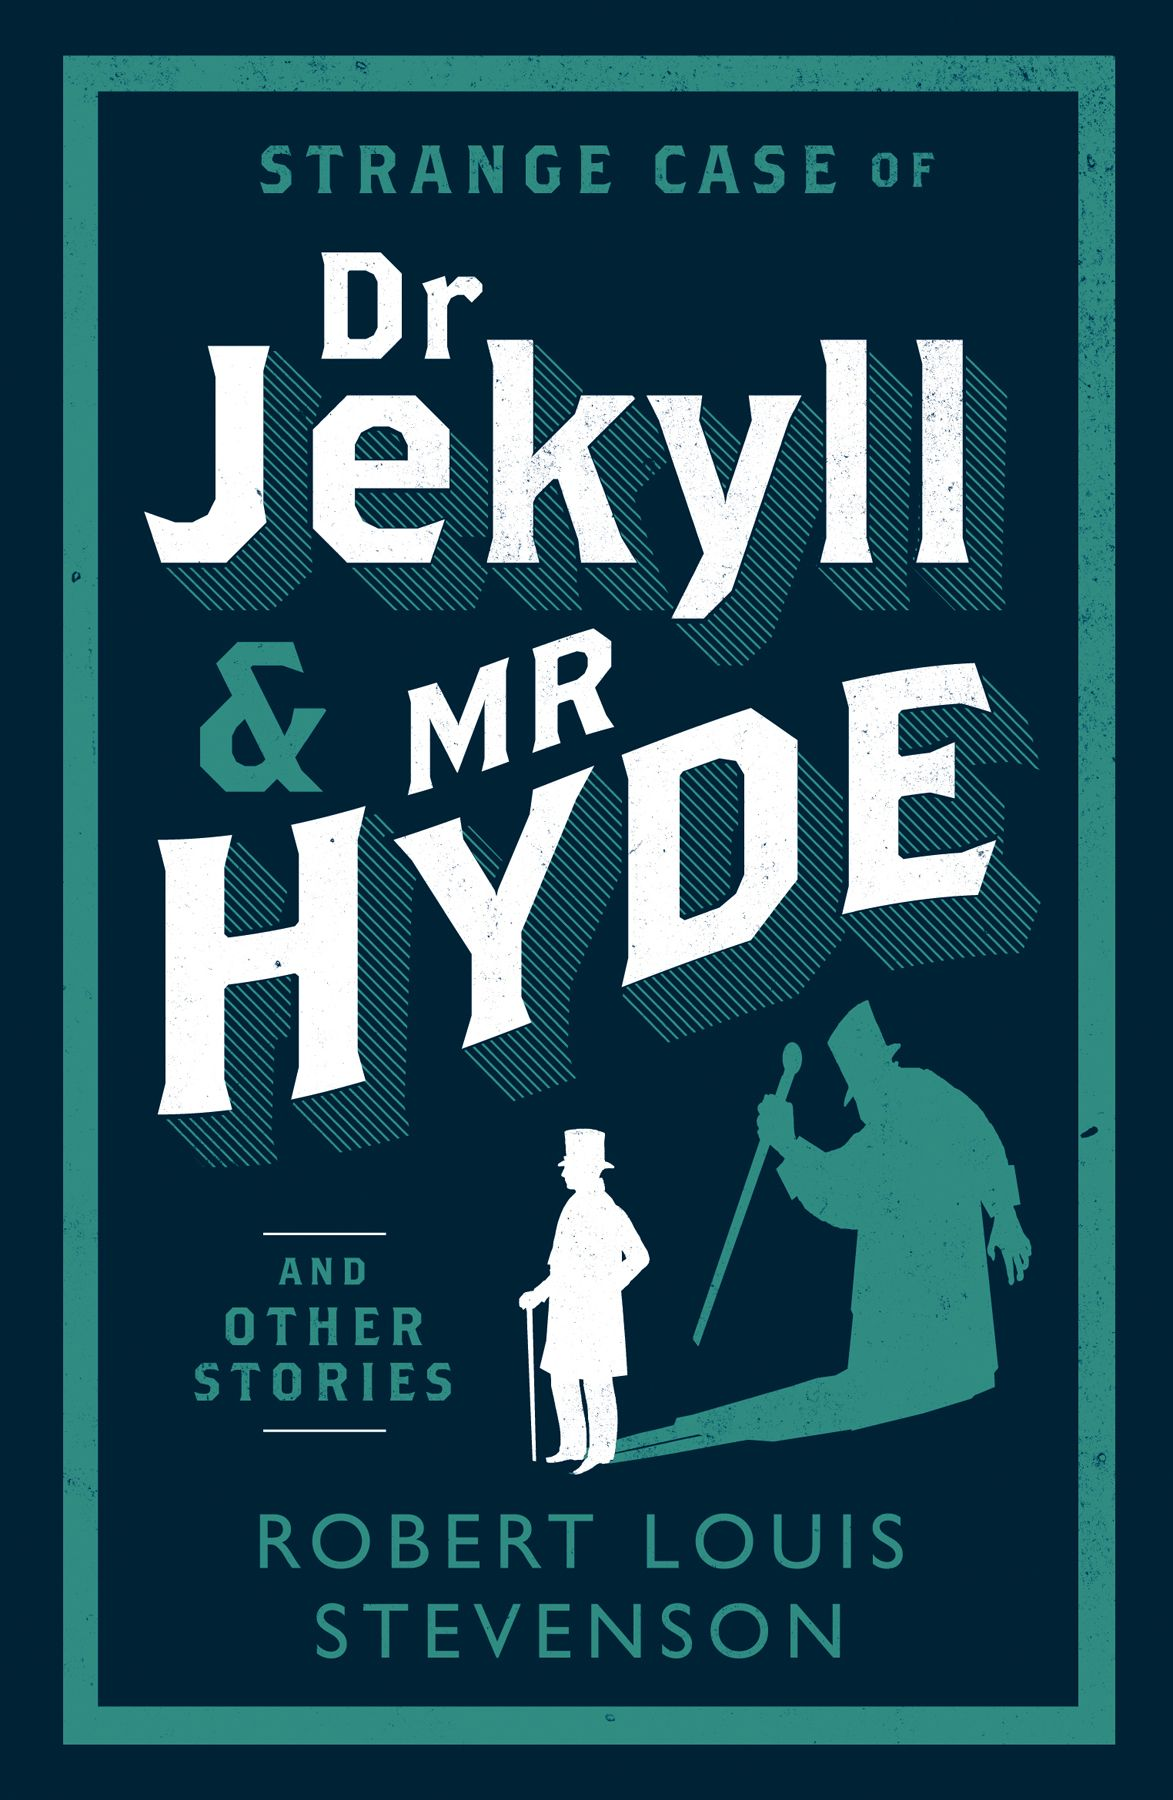 Image result for Strange Case of Dr. Jekyll and Mr. Hyde book cover